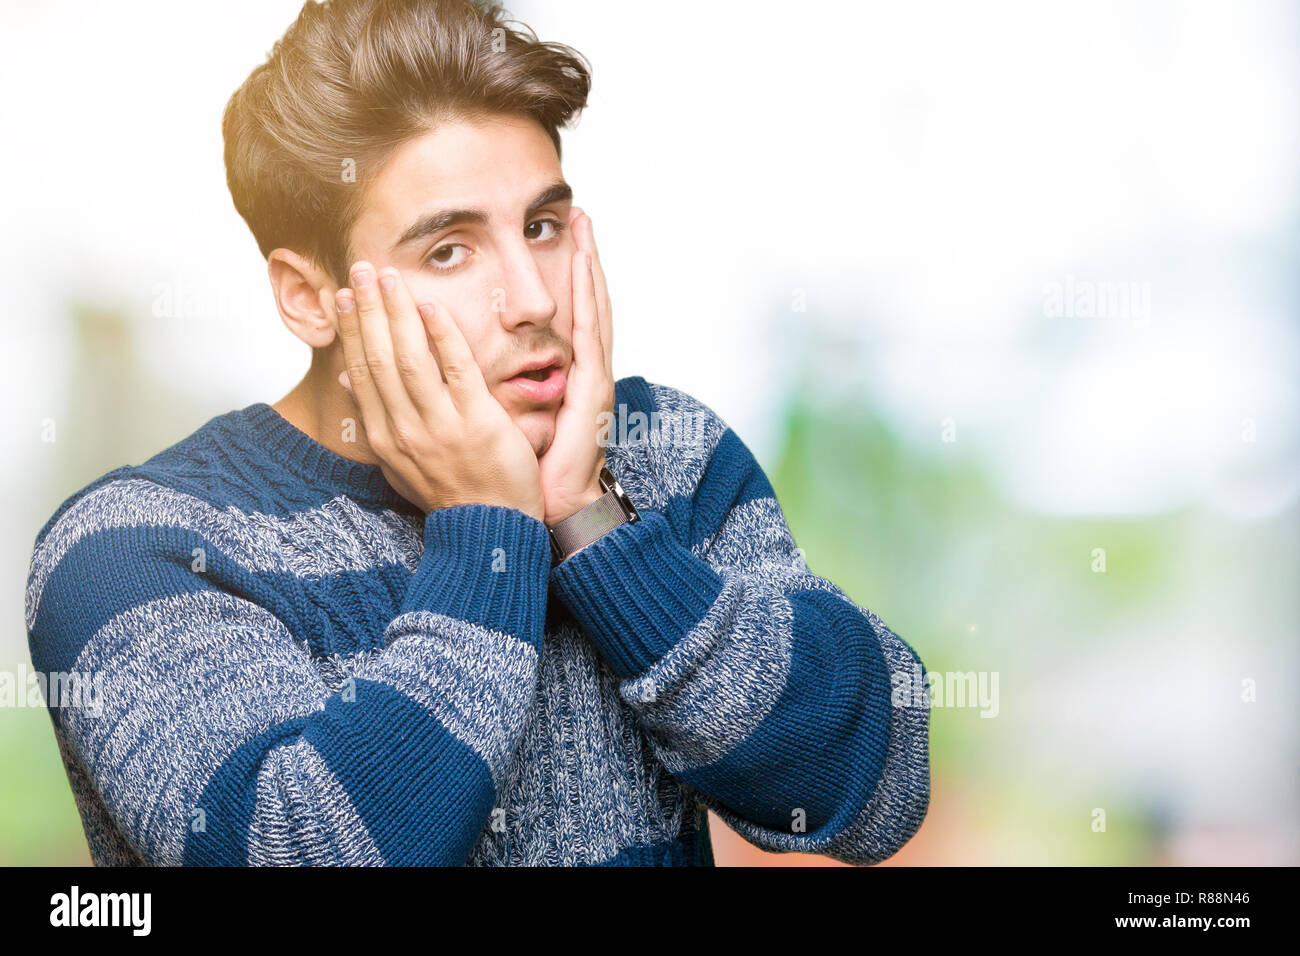 Young handsome man over isolated background Tired hands